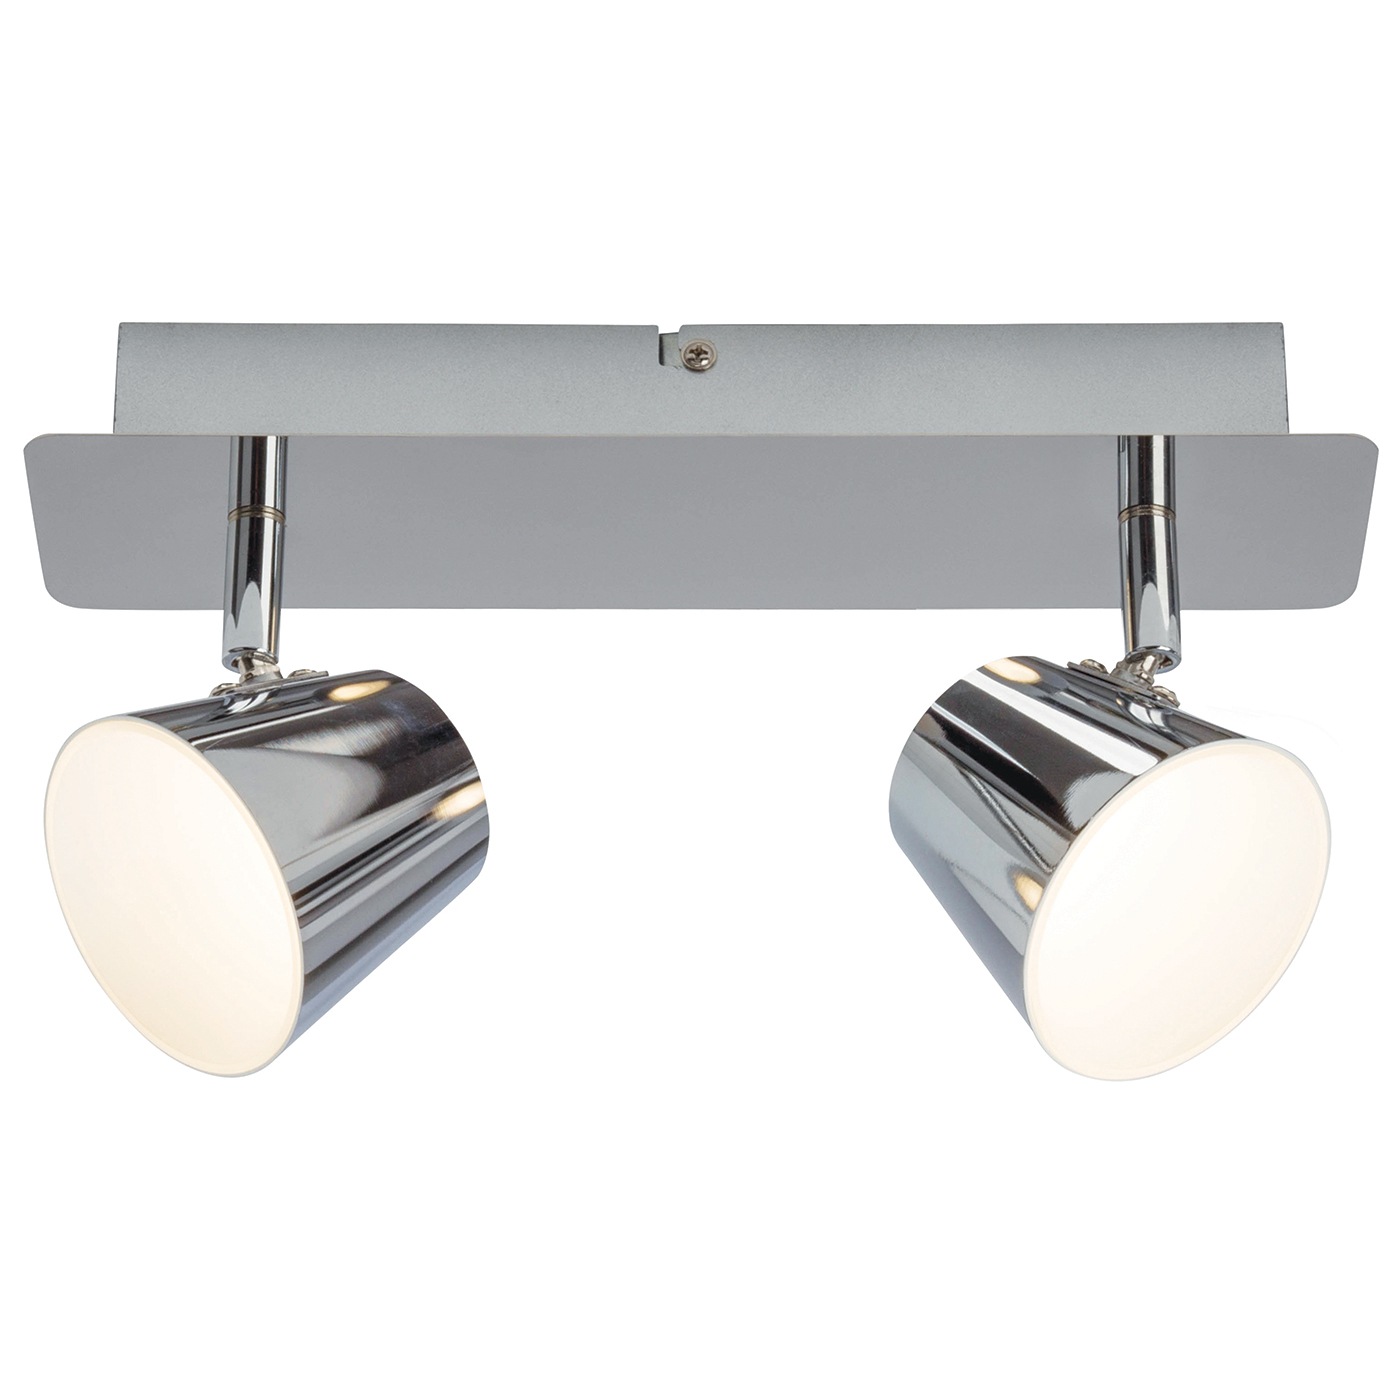 Endon Torsion ceiling spotlight plate 2x 5W Chrome effect plate frosted acrylic